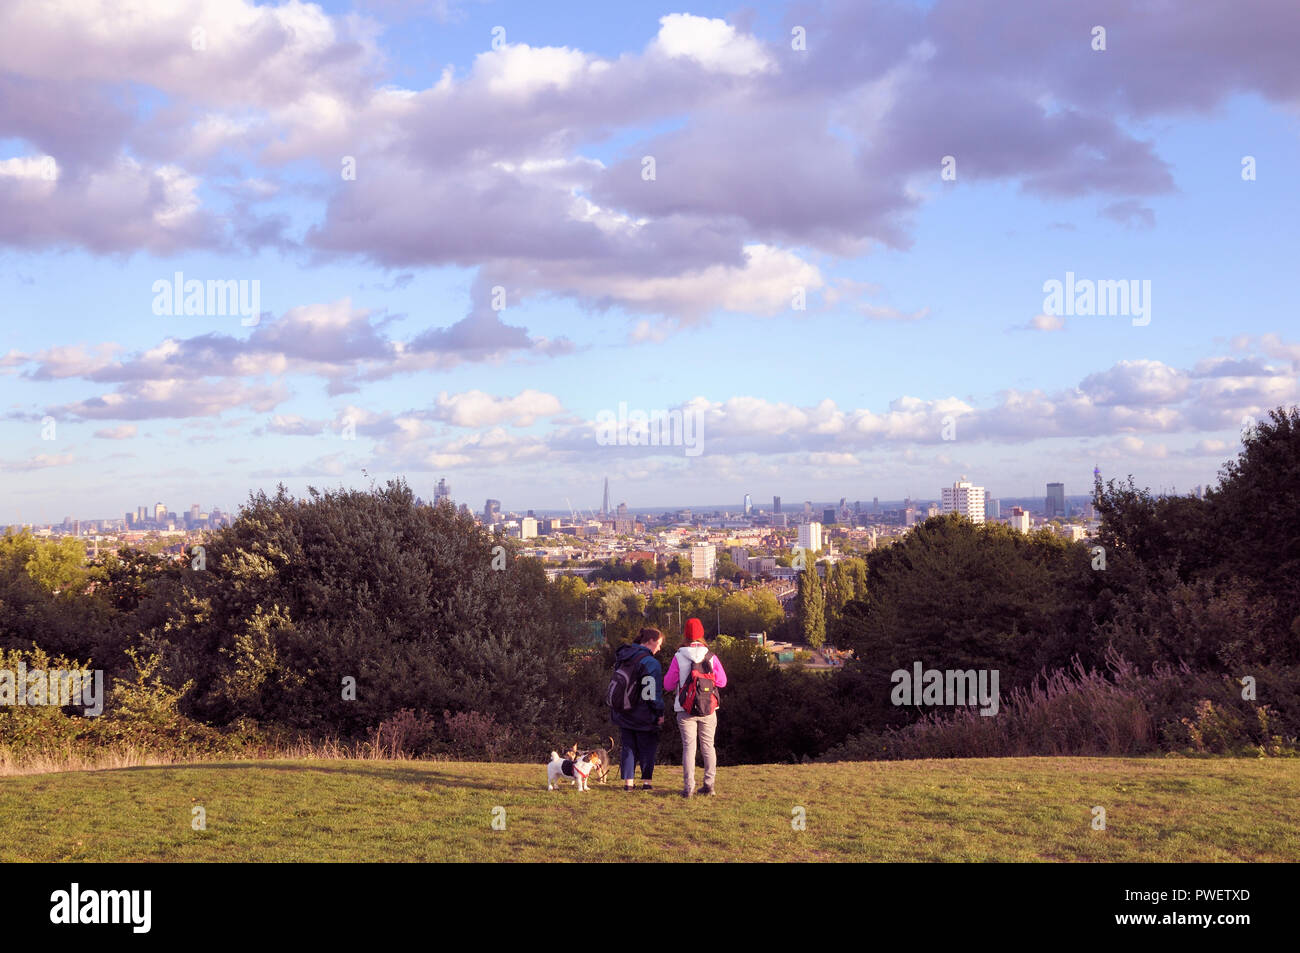 A view of London from Parliament Hill, Hampstead Heath, London NW3, England, UK - Stock Image